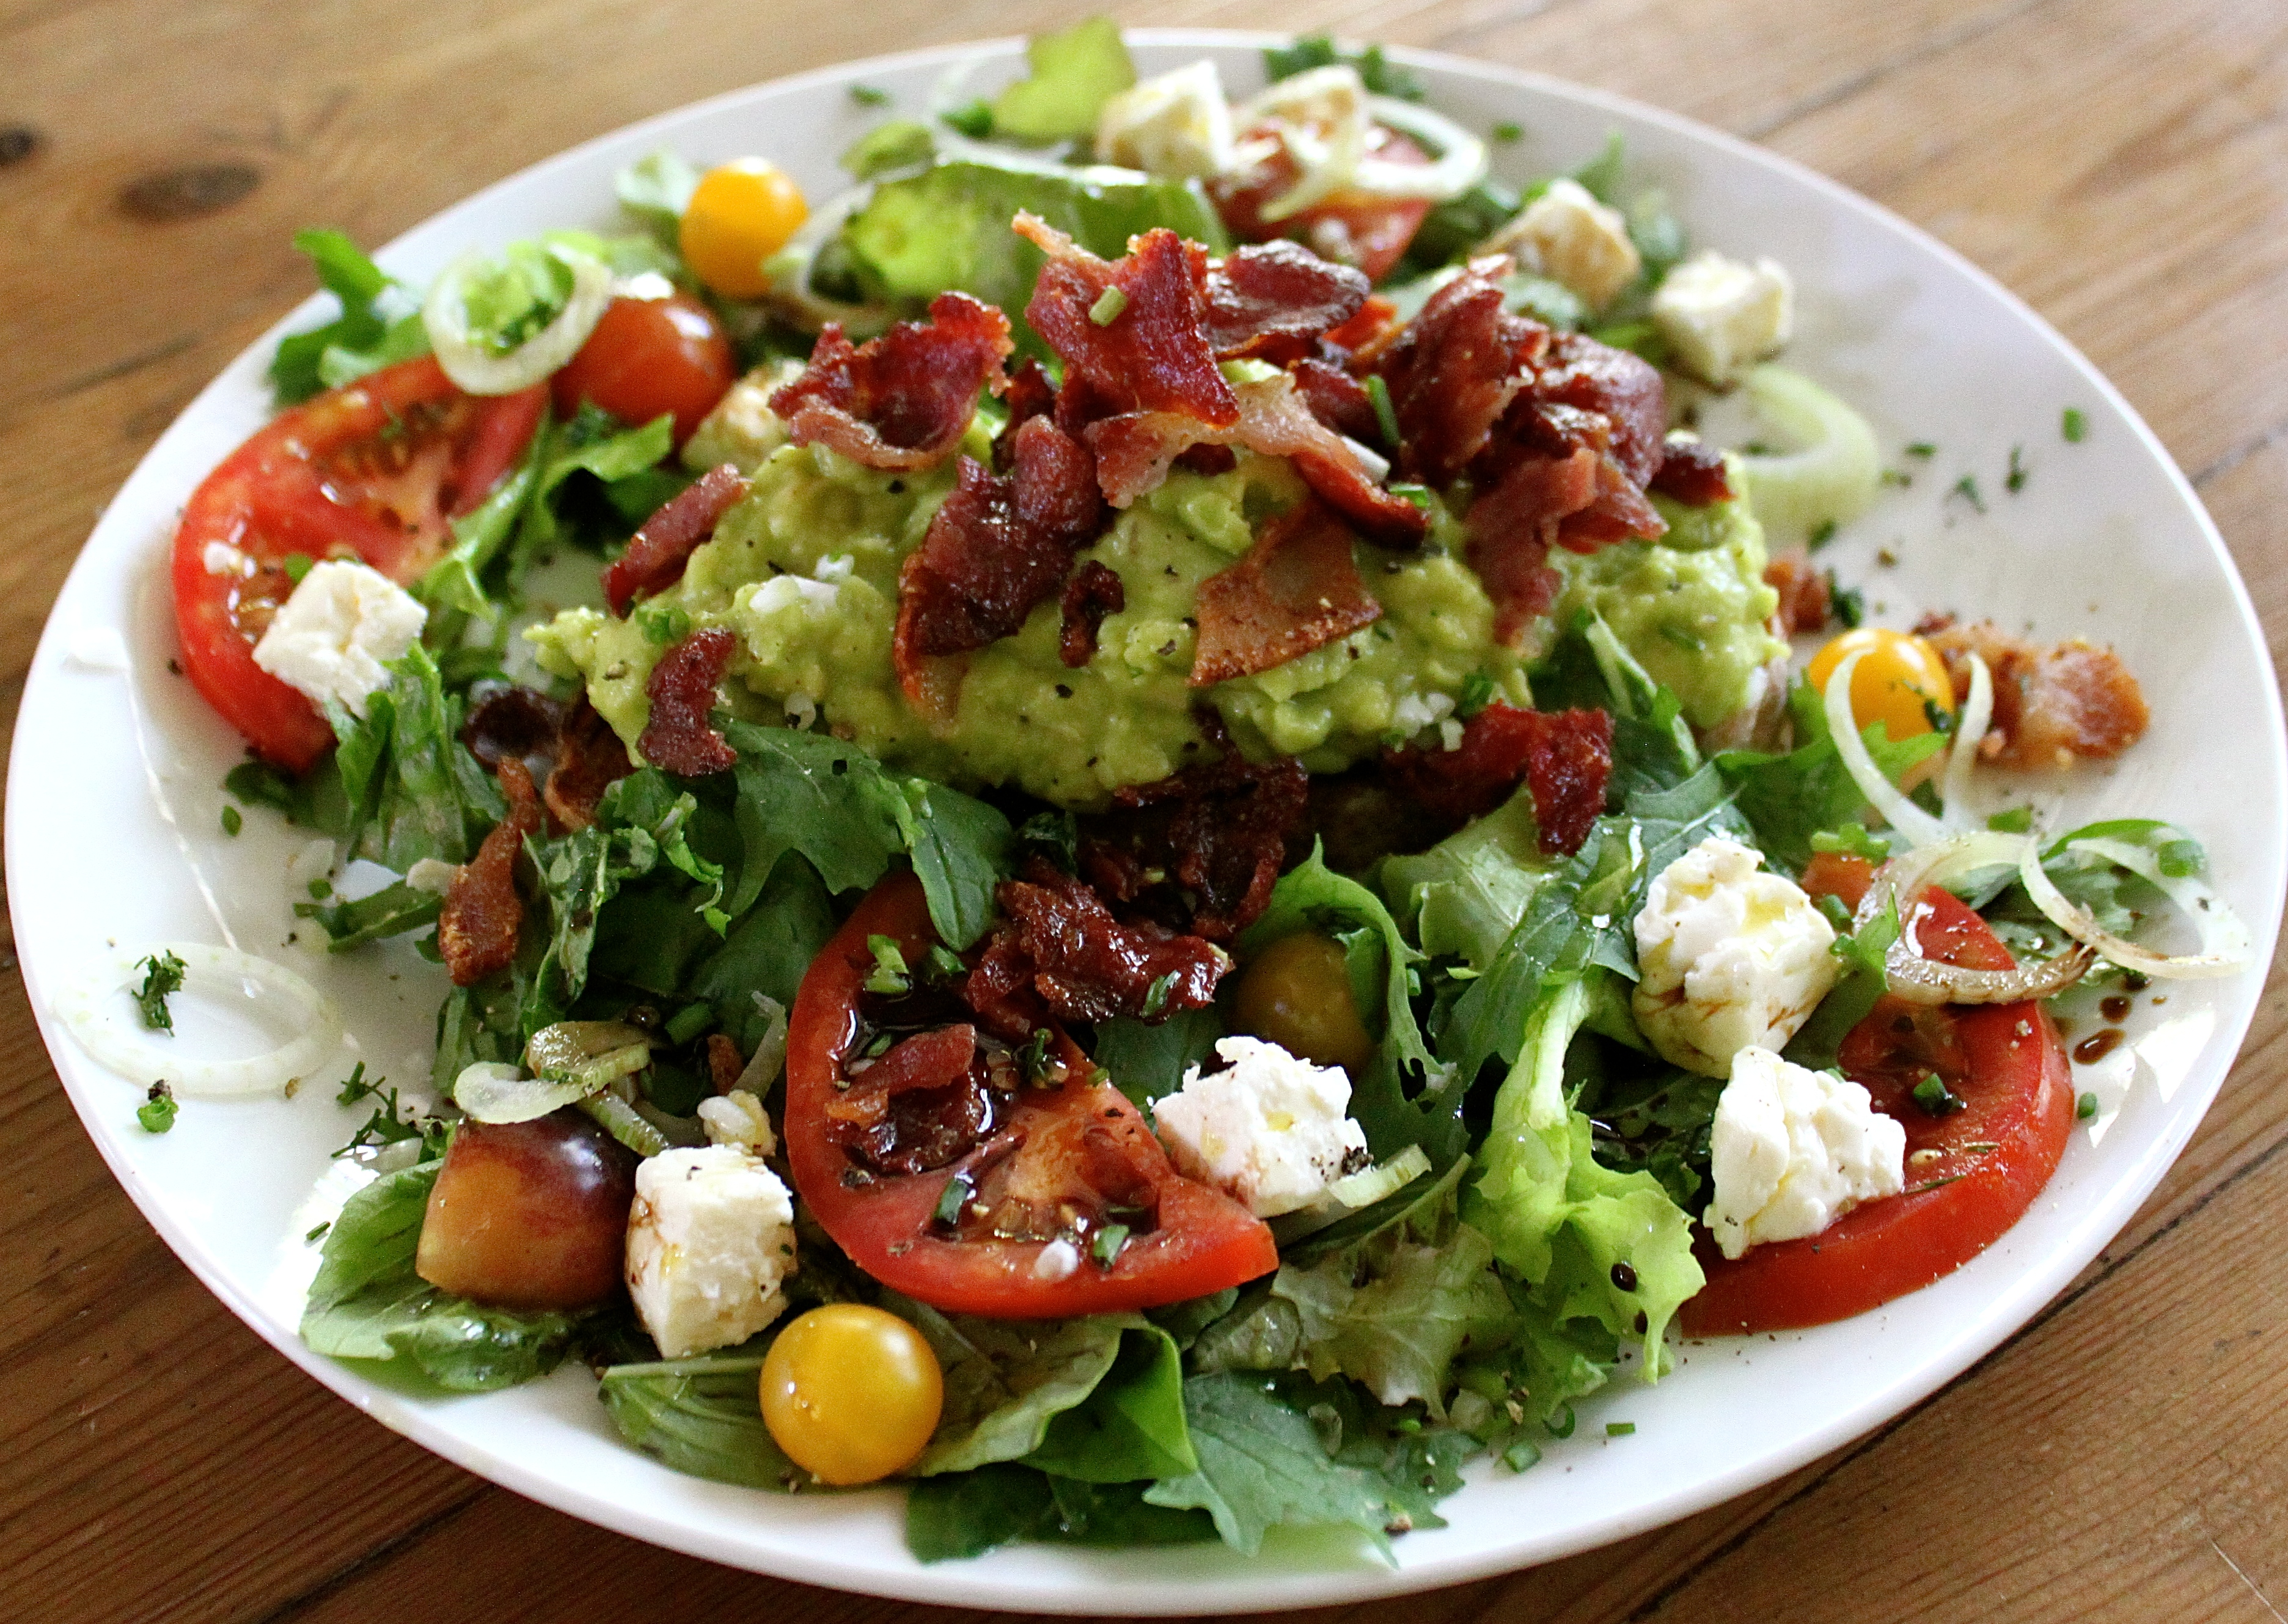 SavannaBel's Smashed Avocado Salad with Bacon.